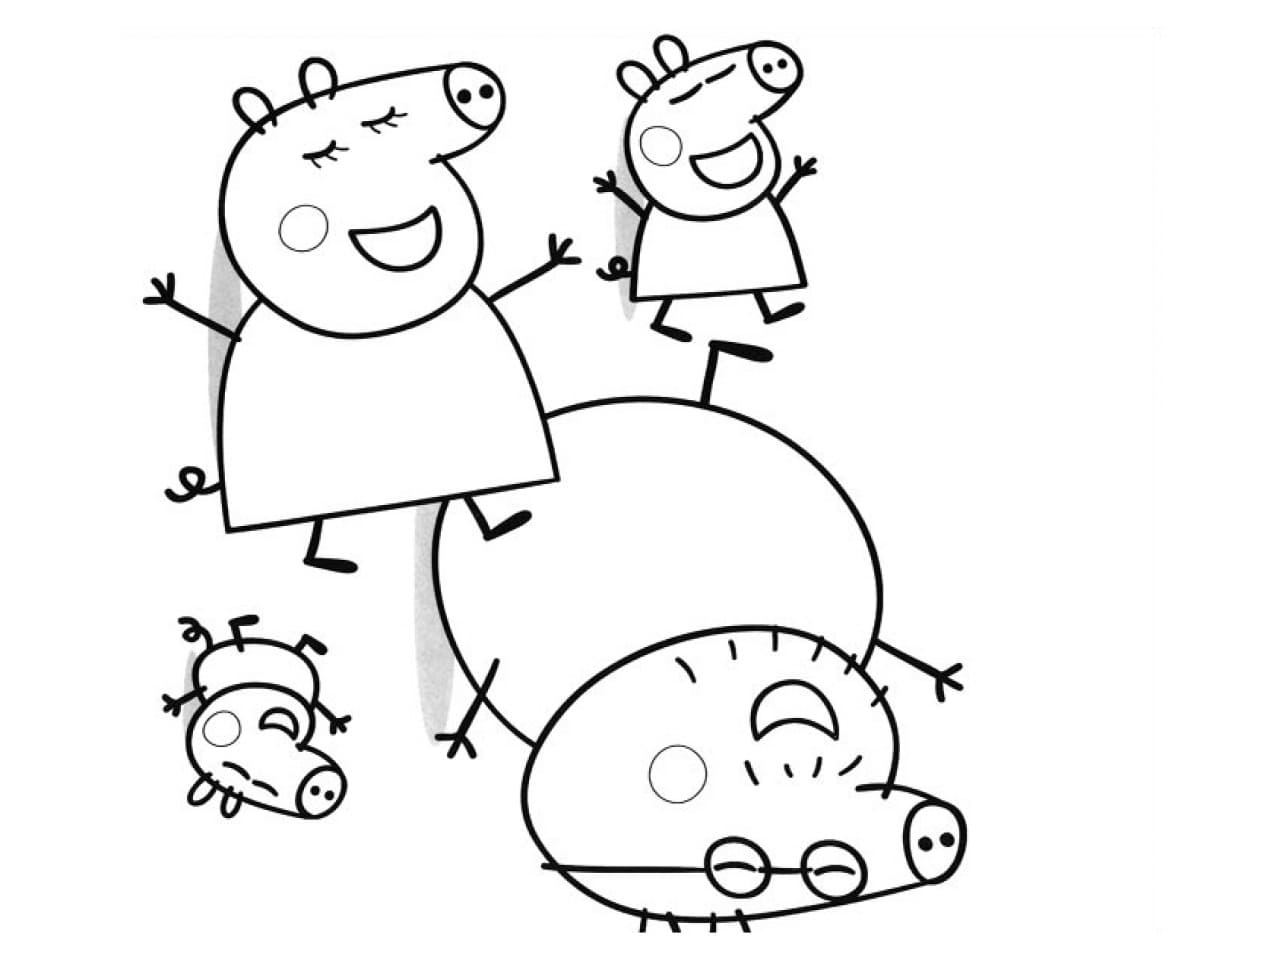 Peppa Pig coloring pages. Her family and friends. Print online